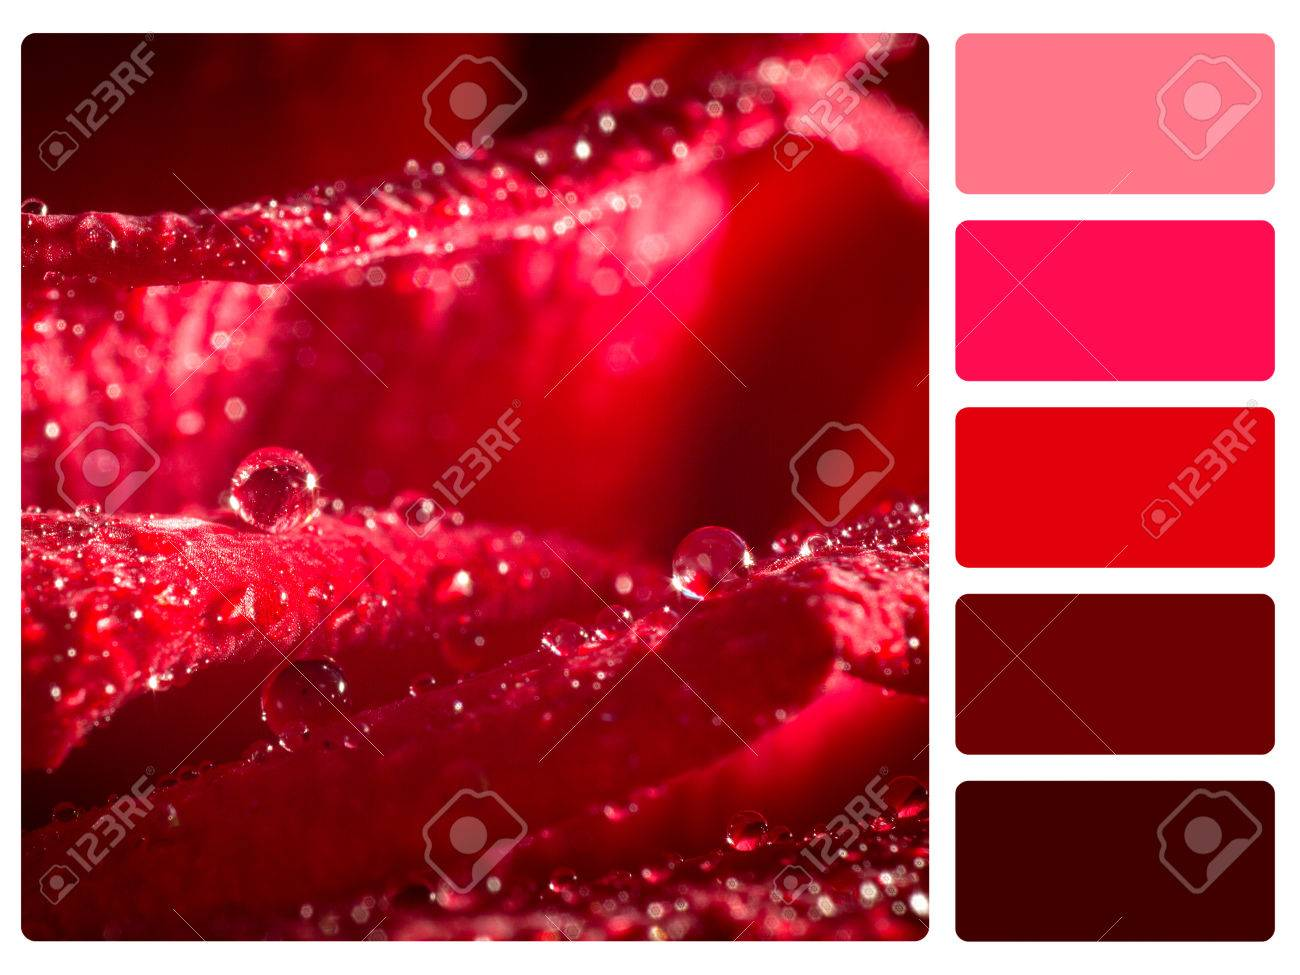 Colour Palette With Complimentary Swatches Red Rose Backgrounds